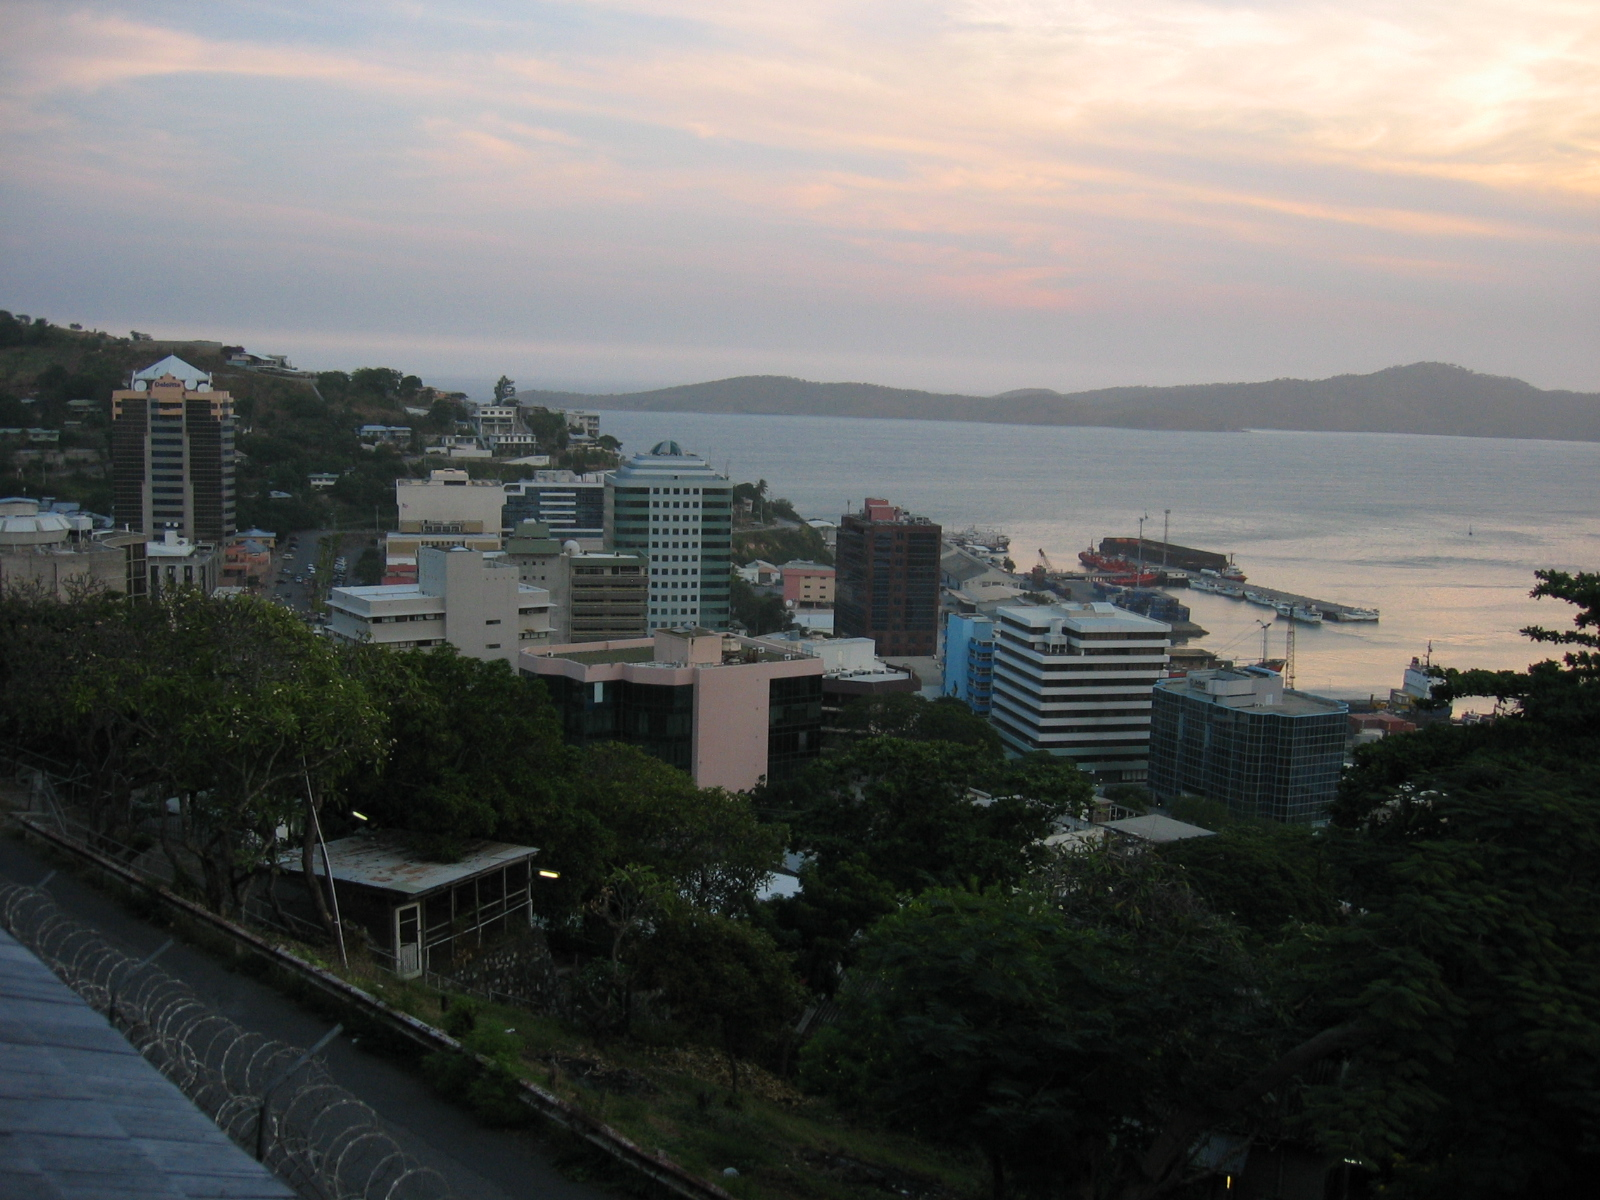 Apartment buildings in  Port Moresby, Papua New Guinea have views over the water but are too expensive for most citizens. This image is from Wikimedia, and is in the public domain.